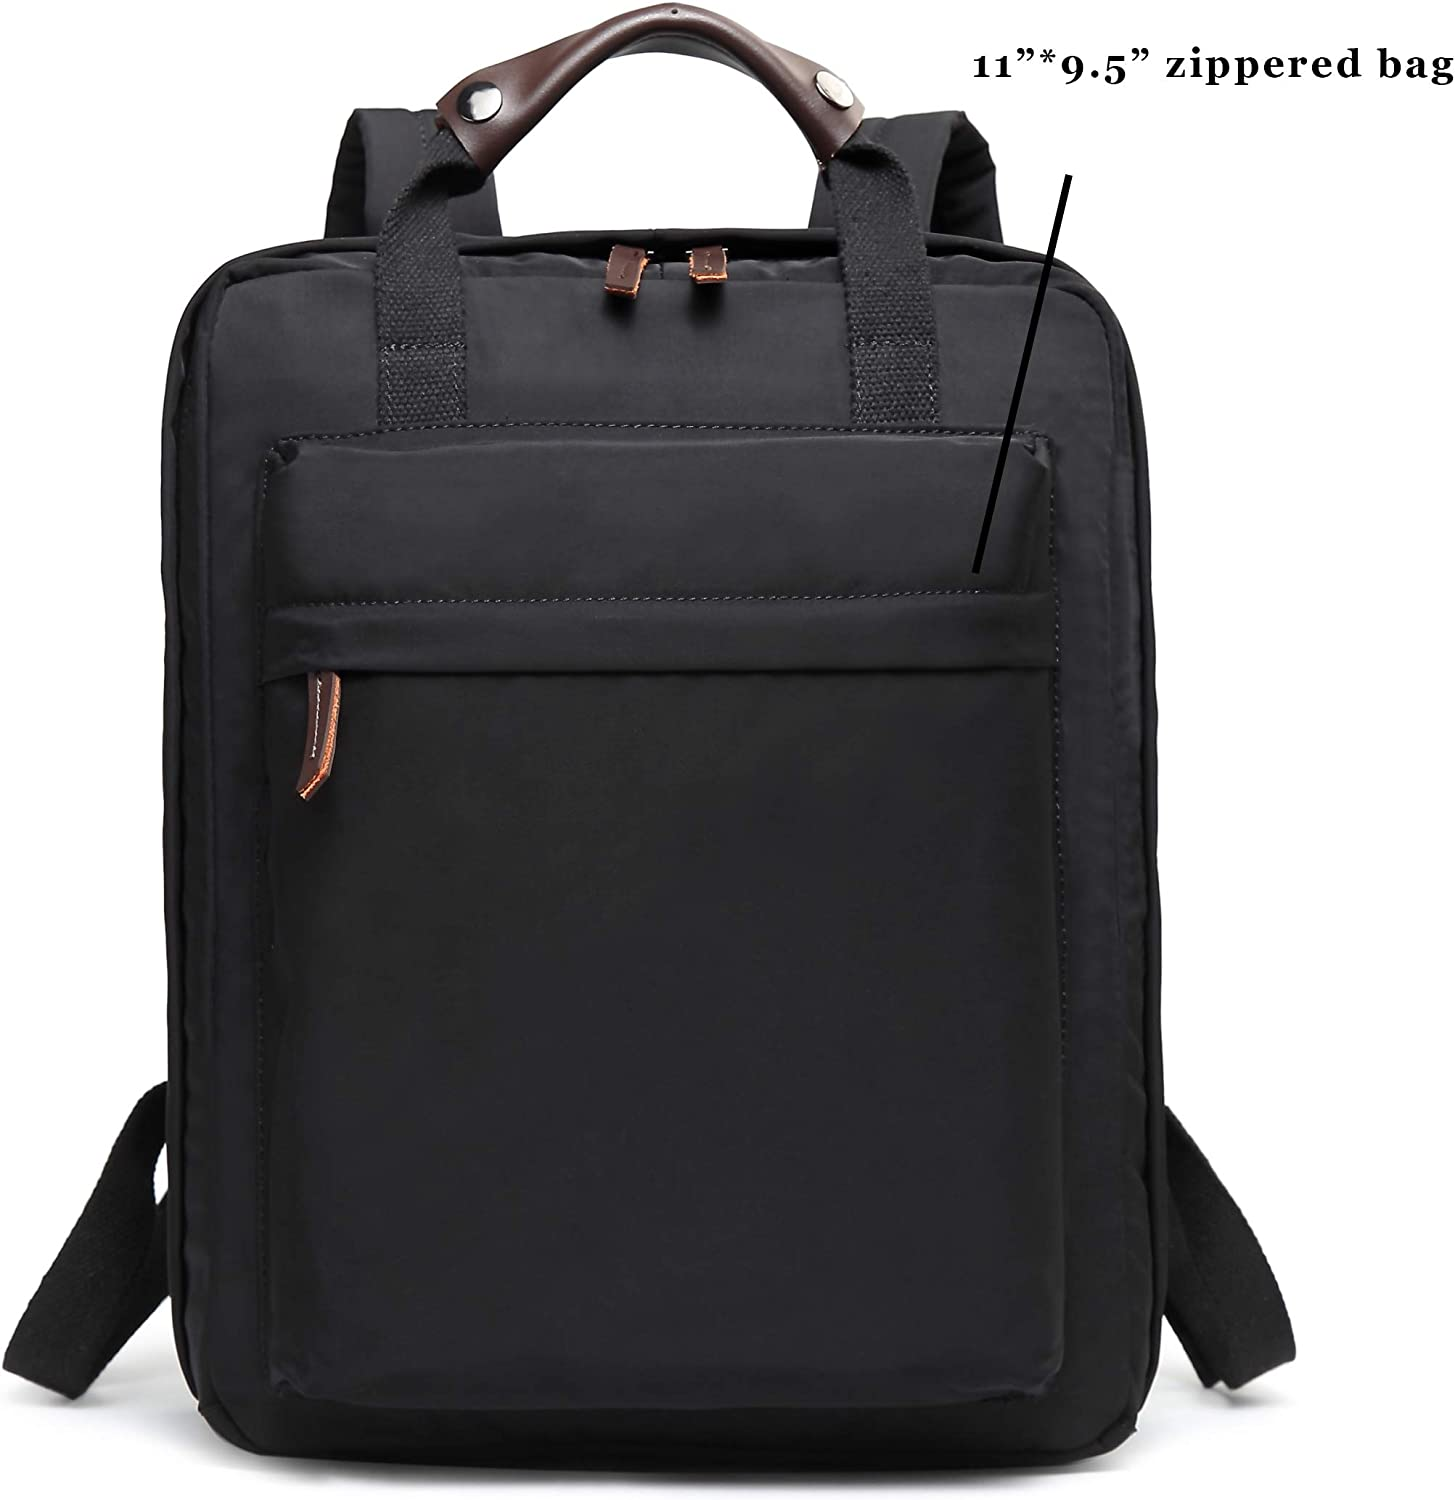 Professional Business Travel Light-weight Anti-theft Backpack Black